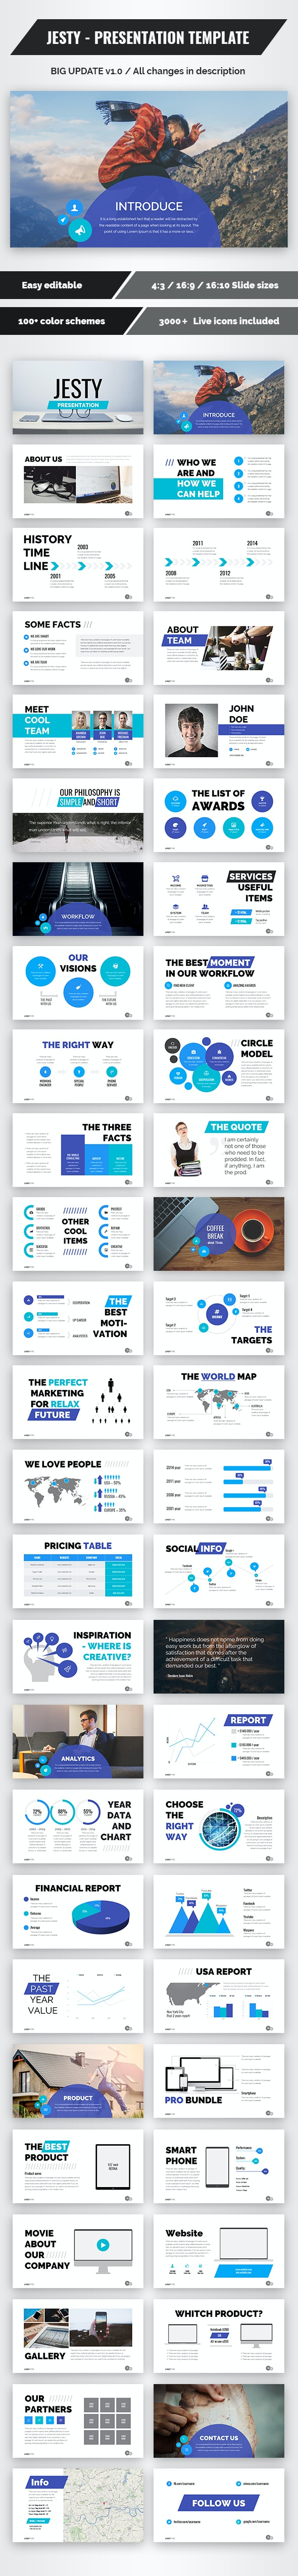 Jesty - Powerpoint Presentation Template (update v1.0) - Business PowerPoint Templates